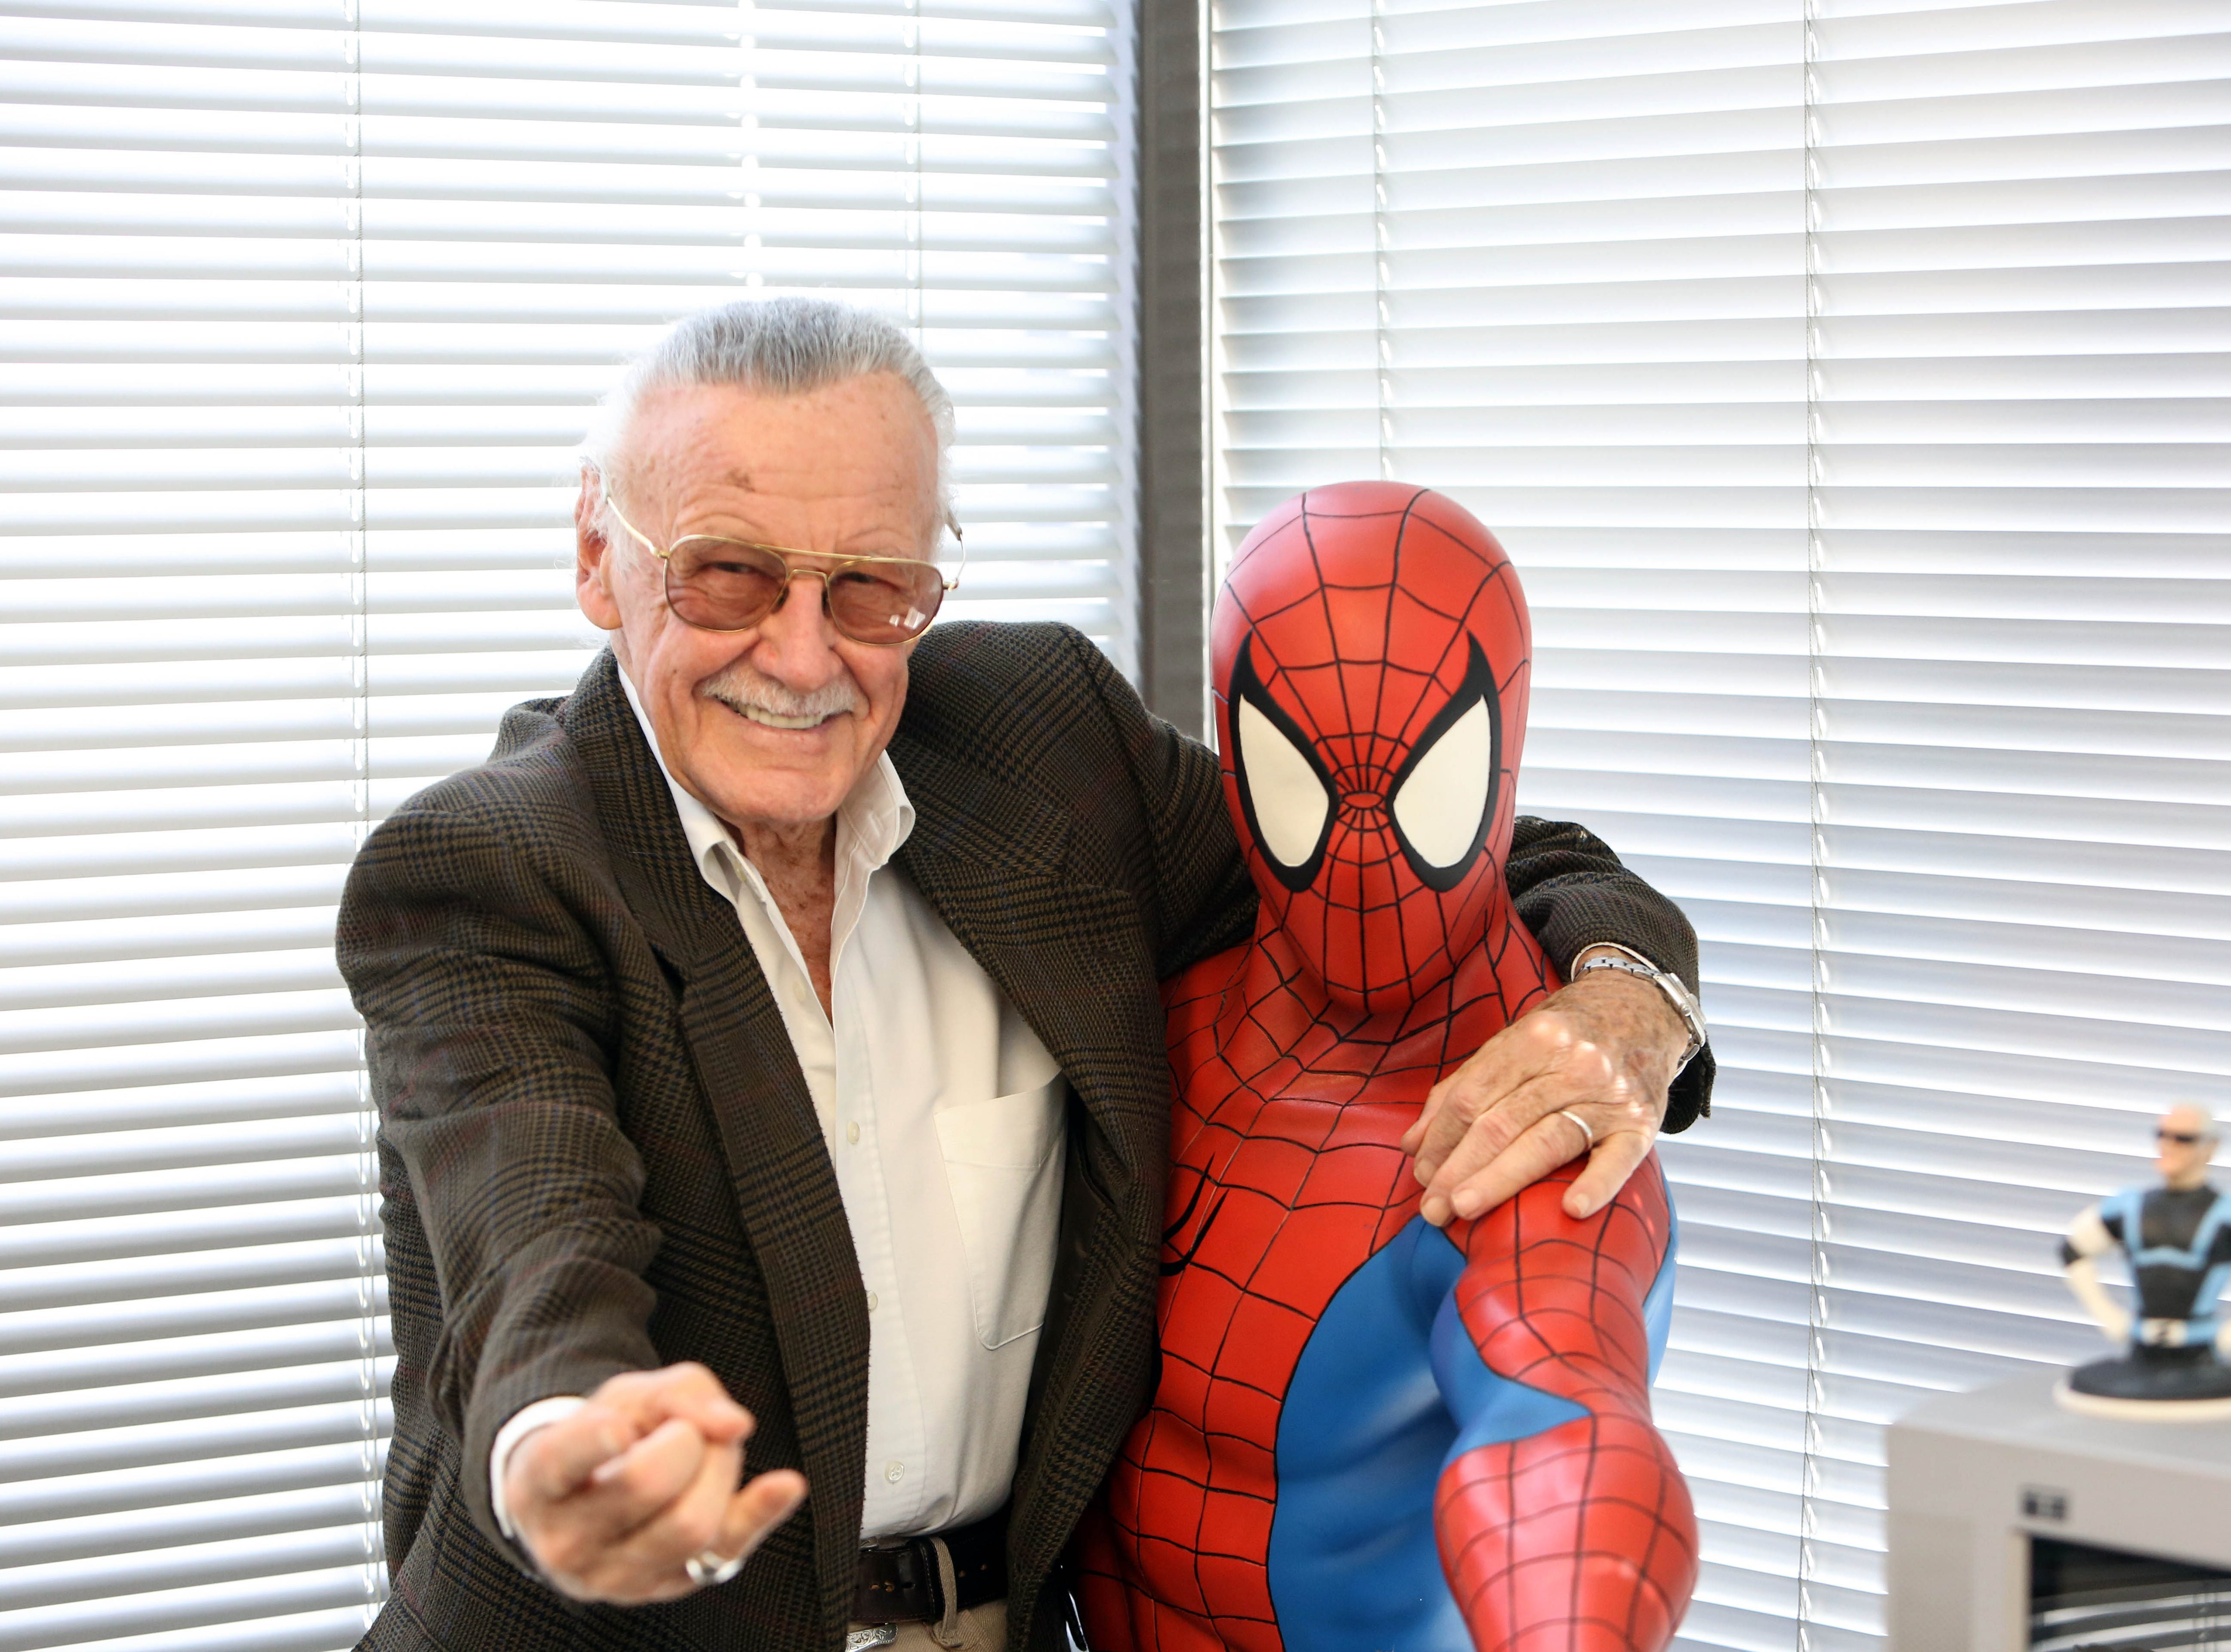 Superhero Stan Lee fought for justice and diversity with relatable comic book characters